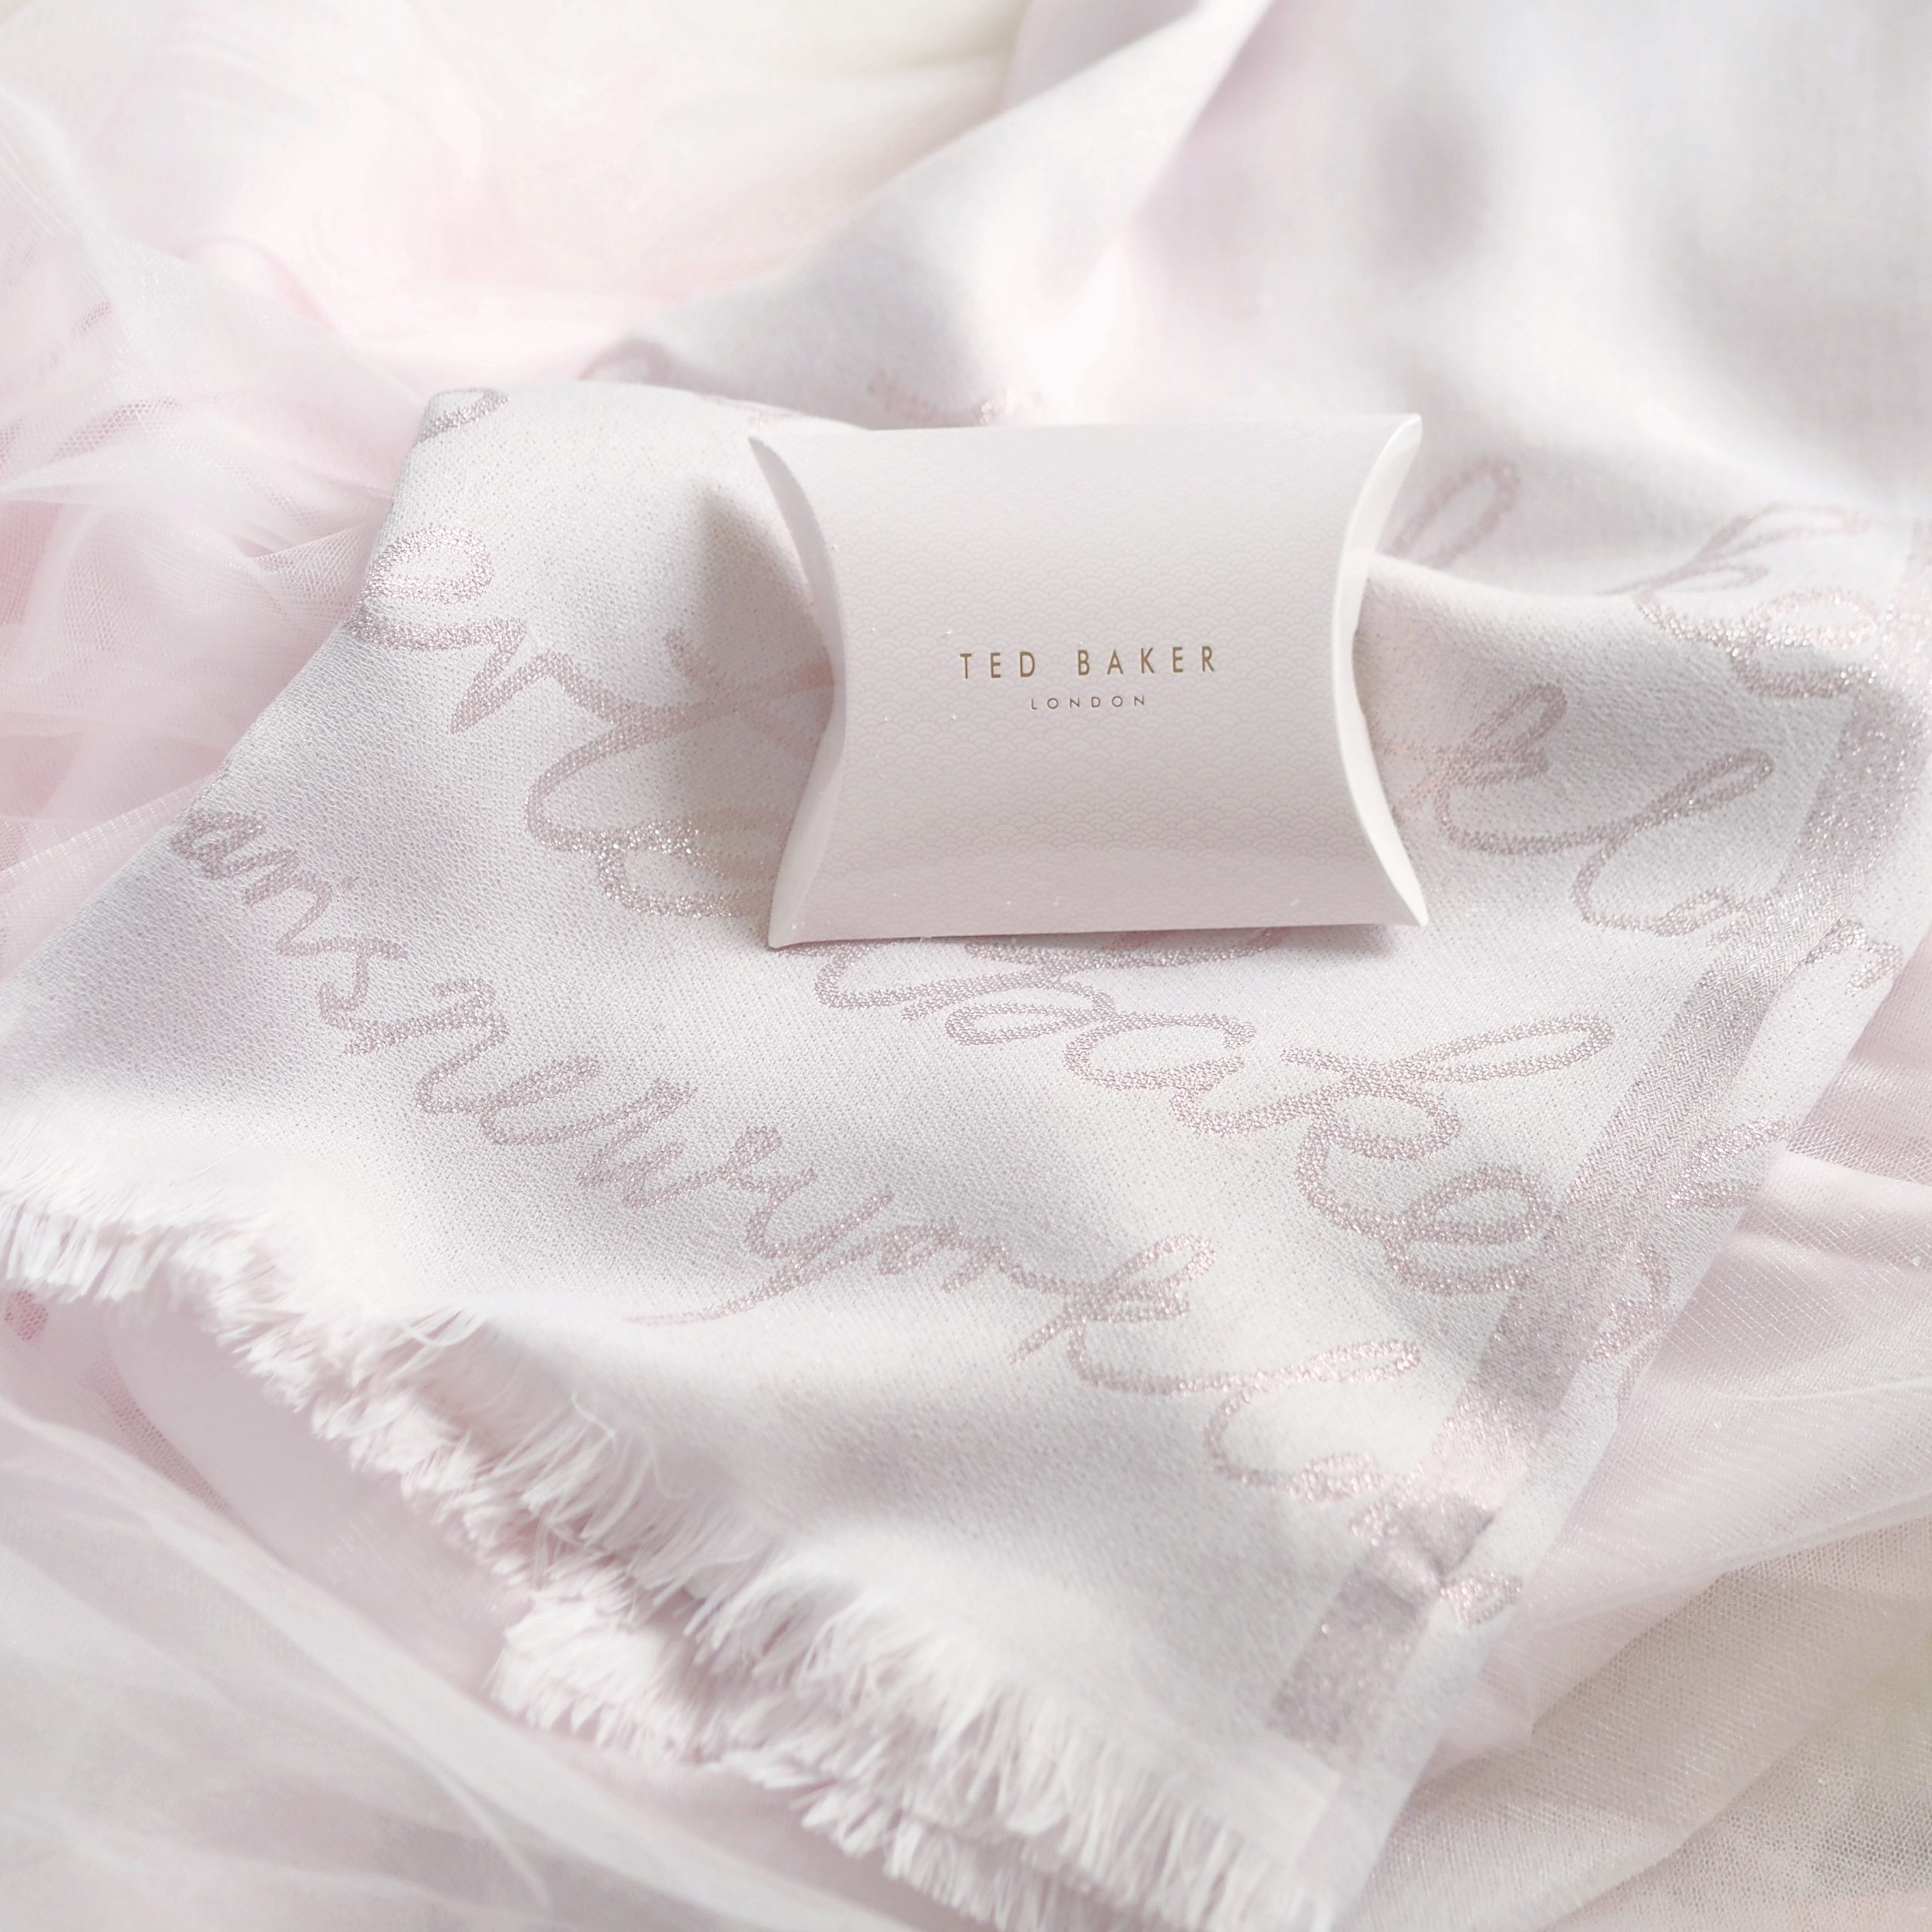 Ted Baker Pink Monogram Scarf | Perfectly Pretty Christmas Gift Ideas